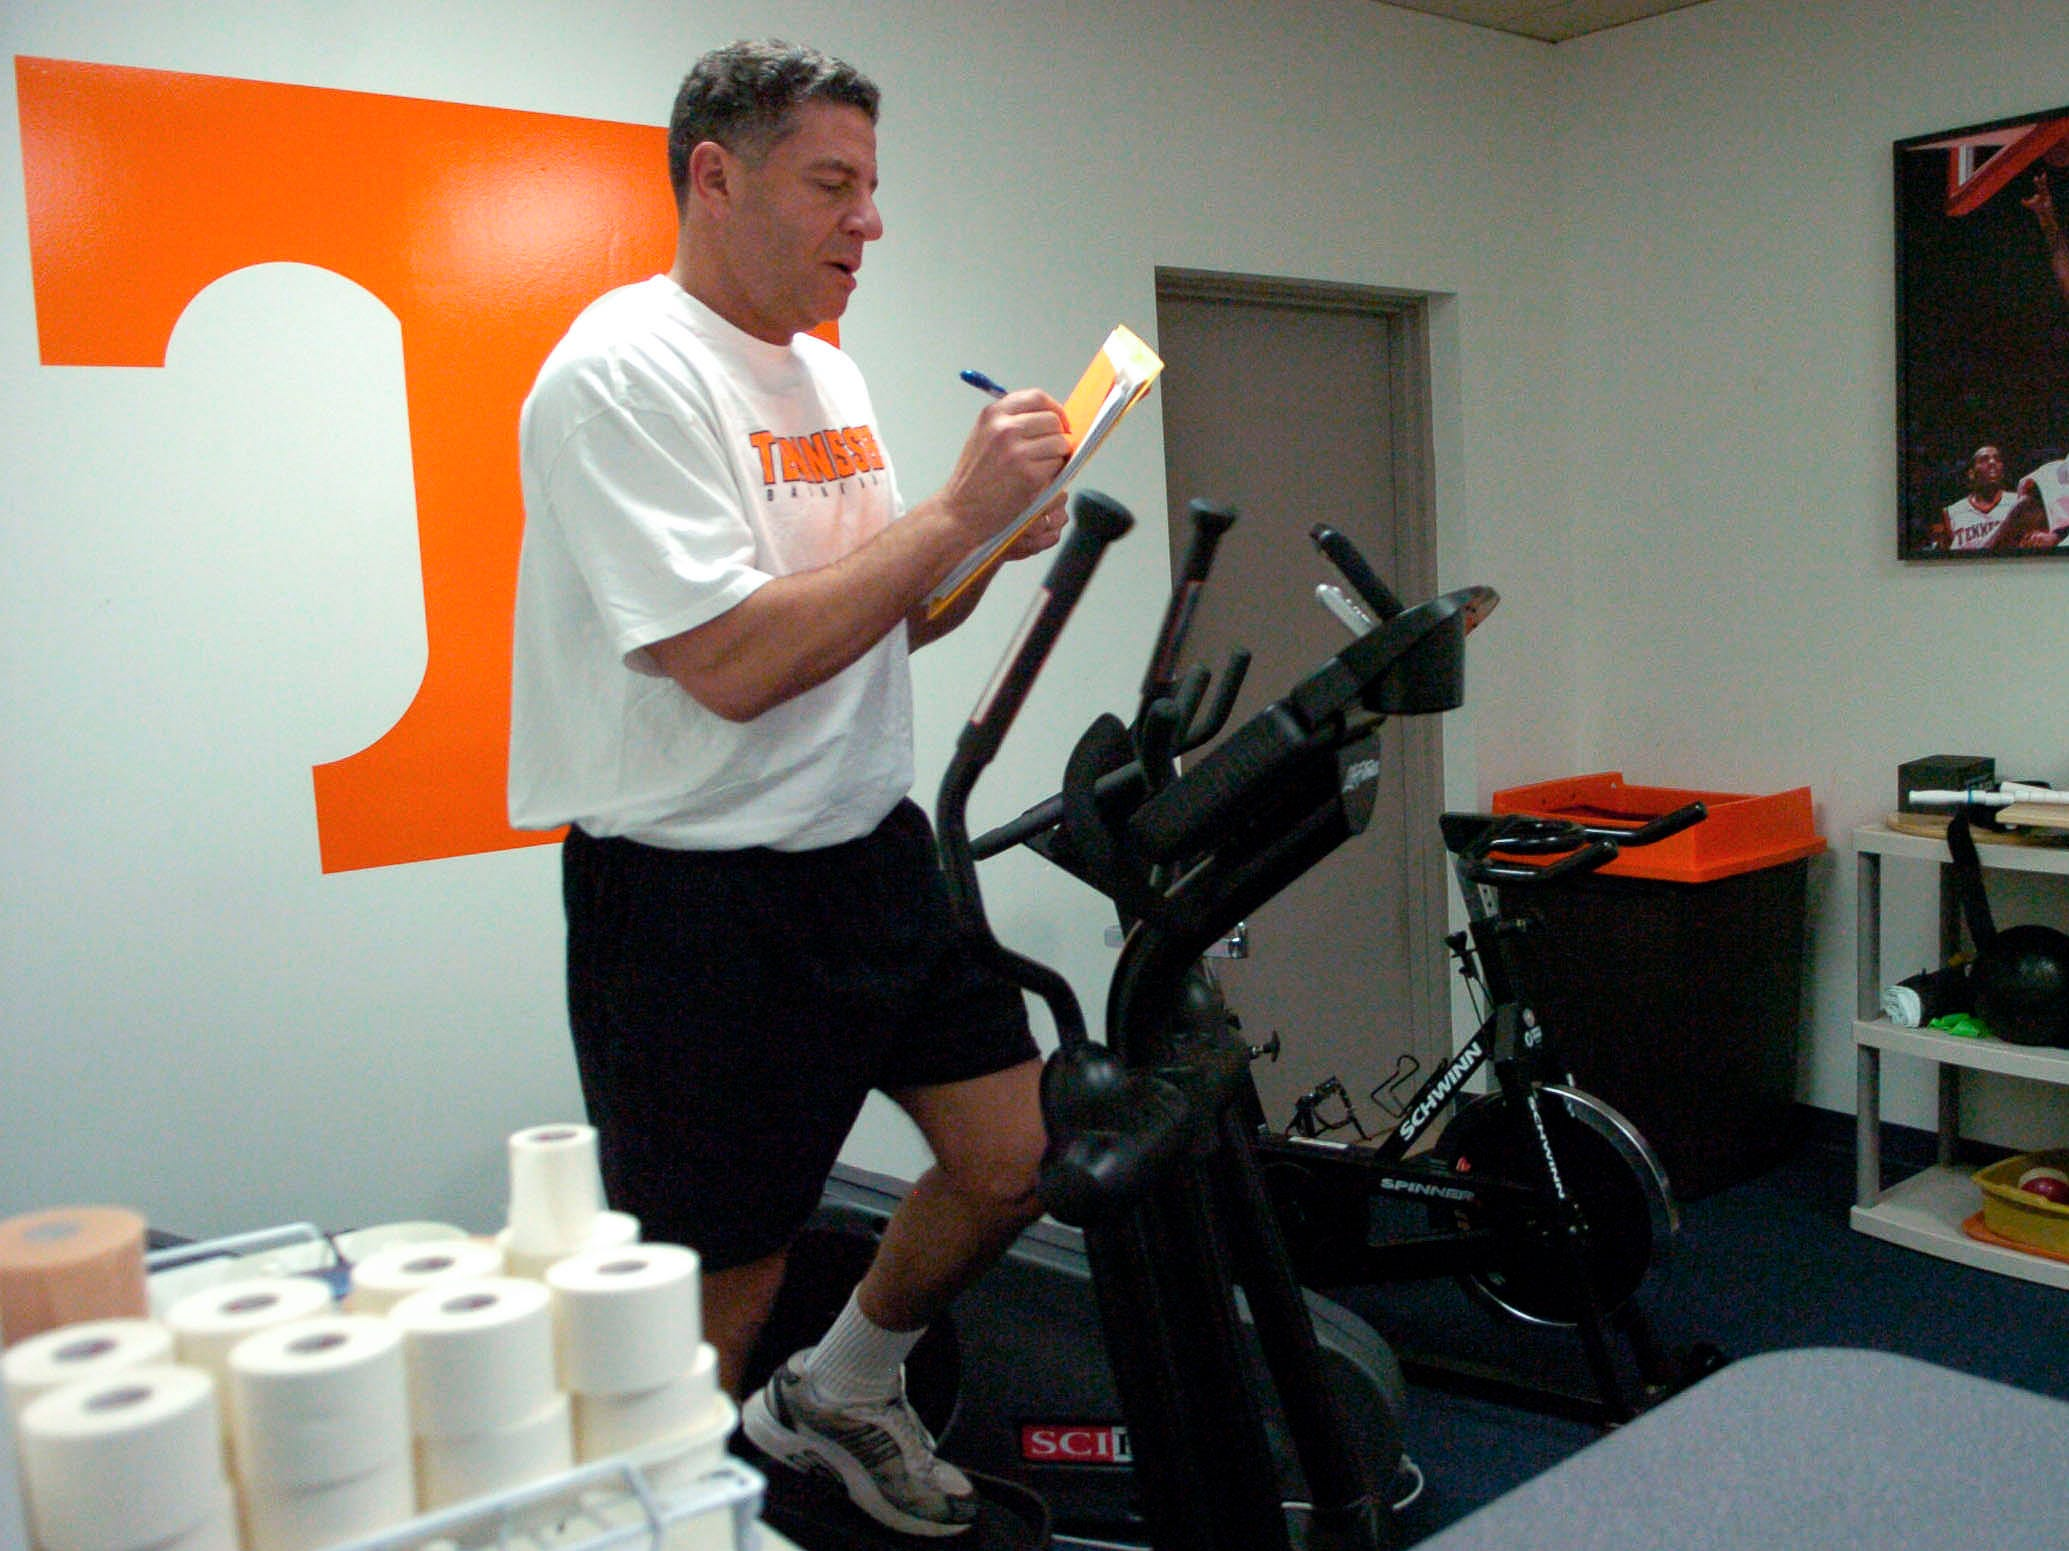 Bruce Pearl works out in the training room and takes notes while watching tapes of the Tennessee and Auburn basketball game in 2006.